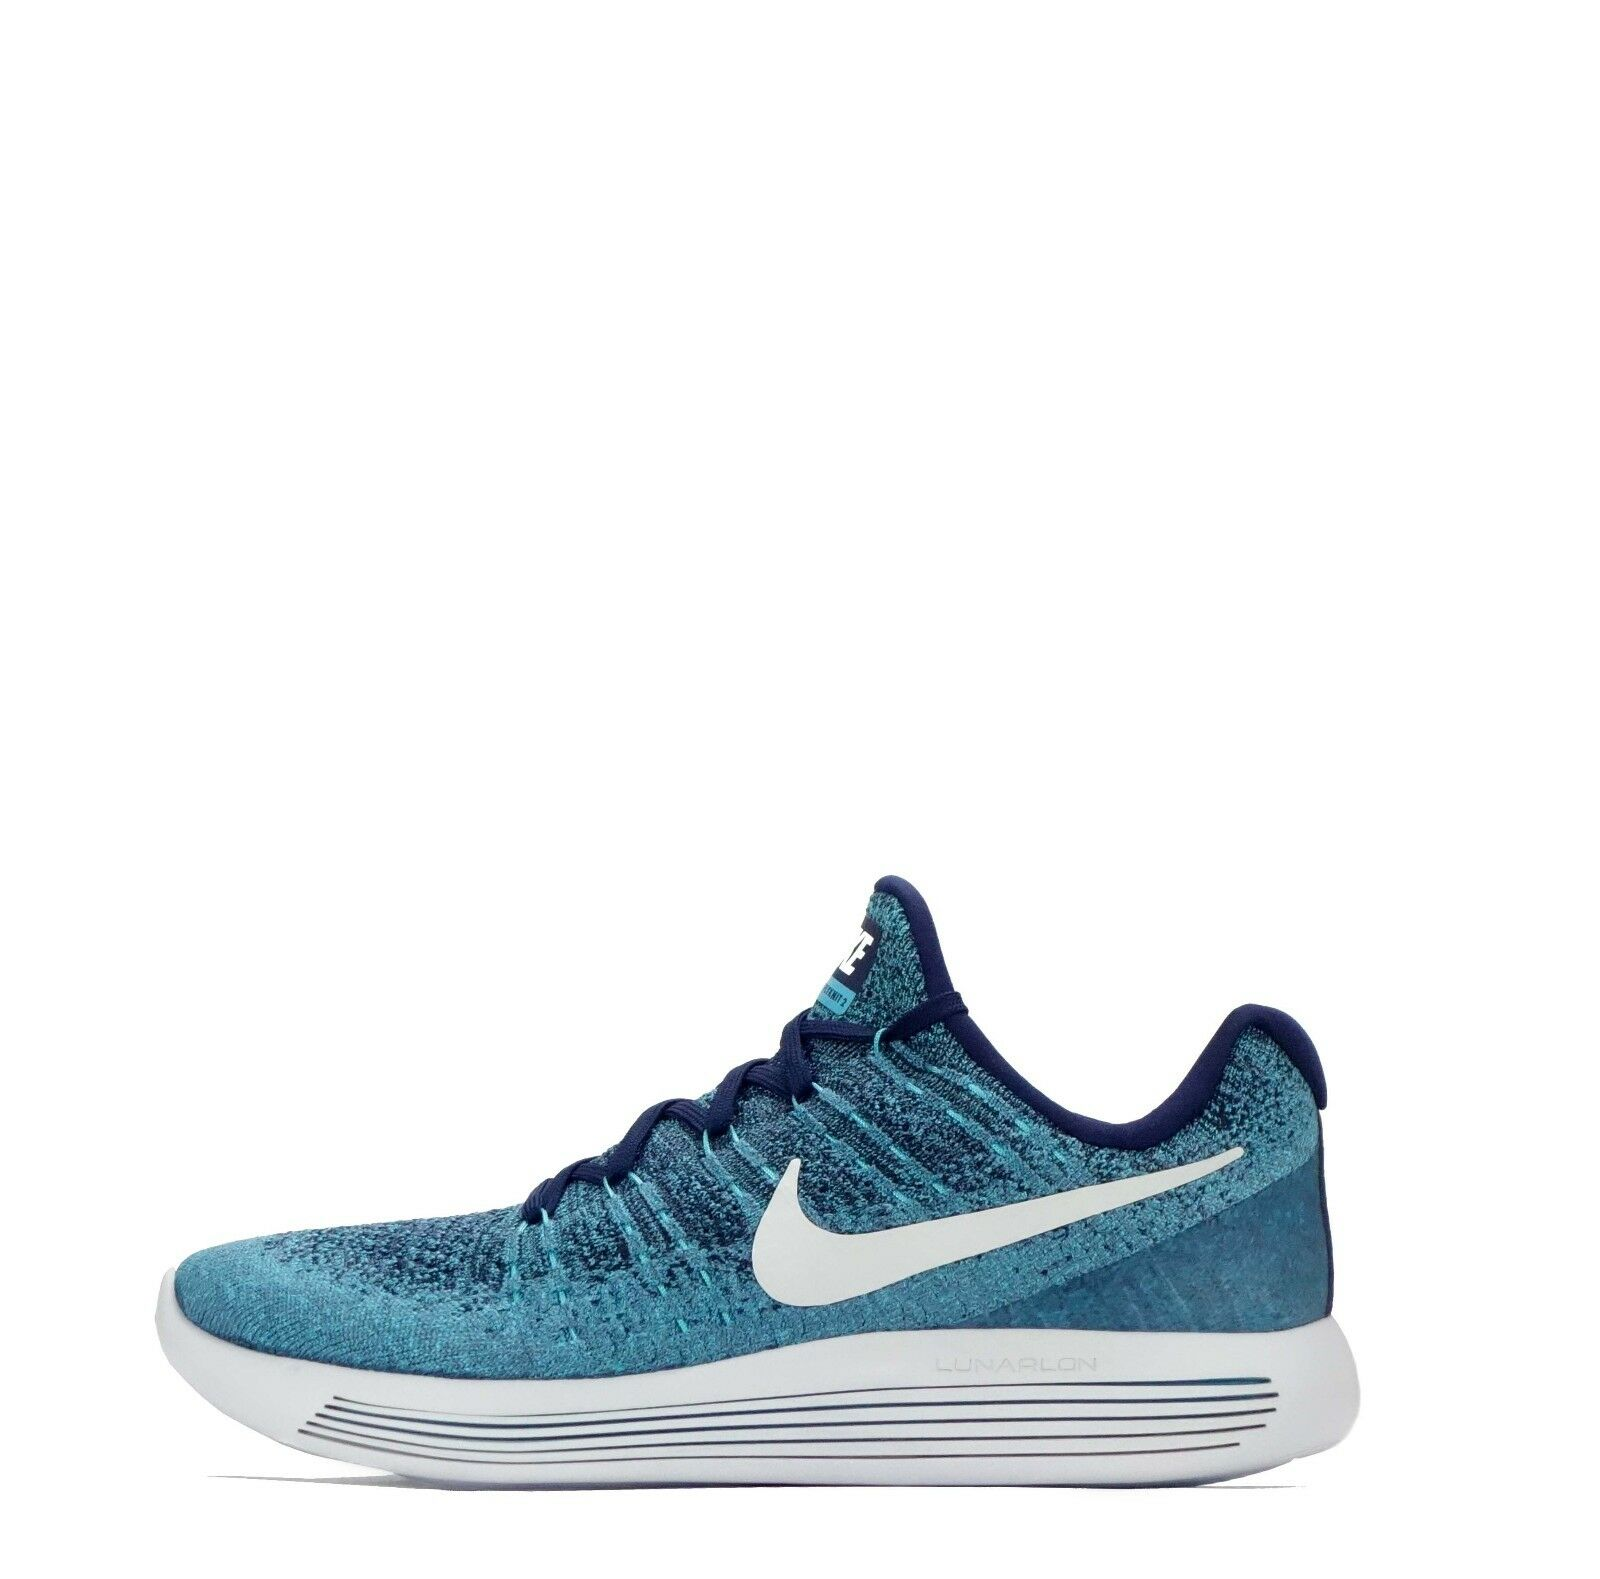 Nike LunarEpic Low Flyknit 2 Men's Lightweight  Sports Running shoes bluee White  hot sale online